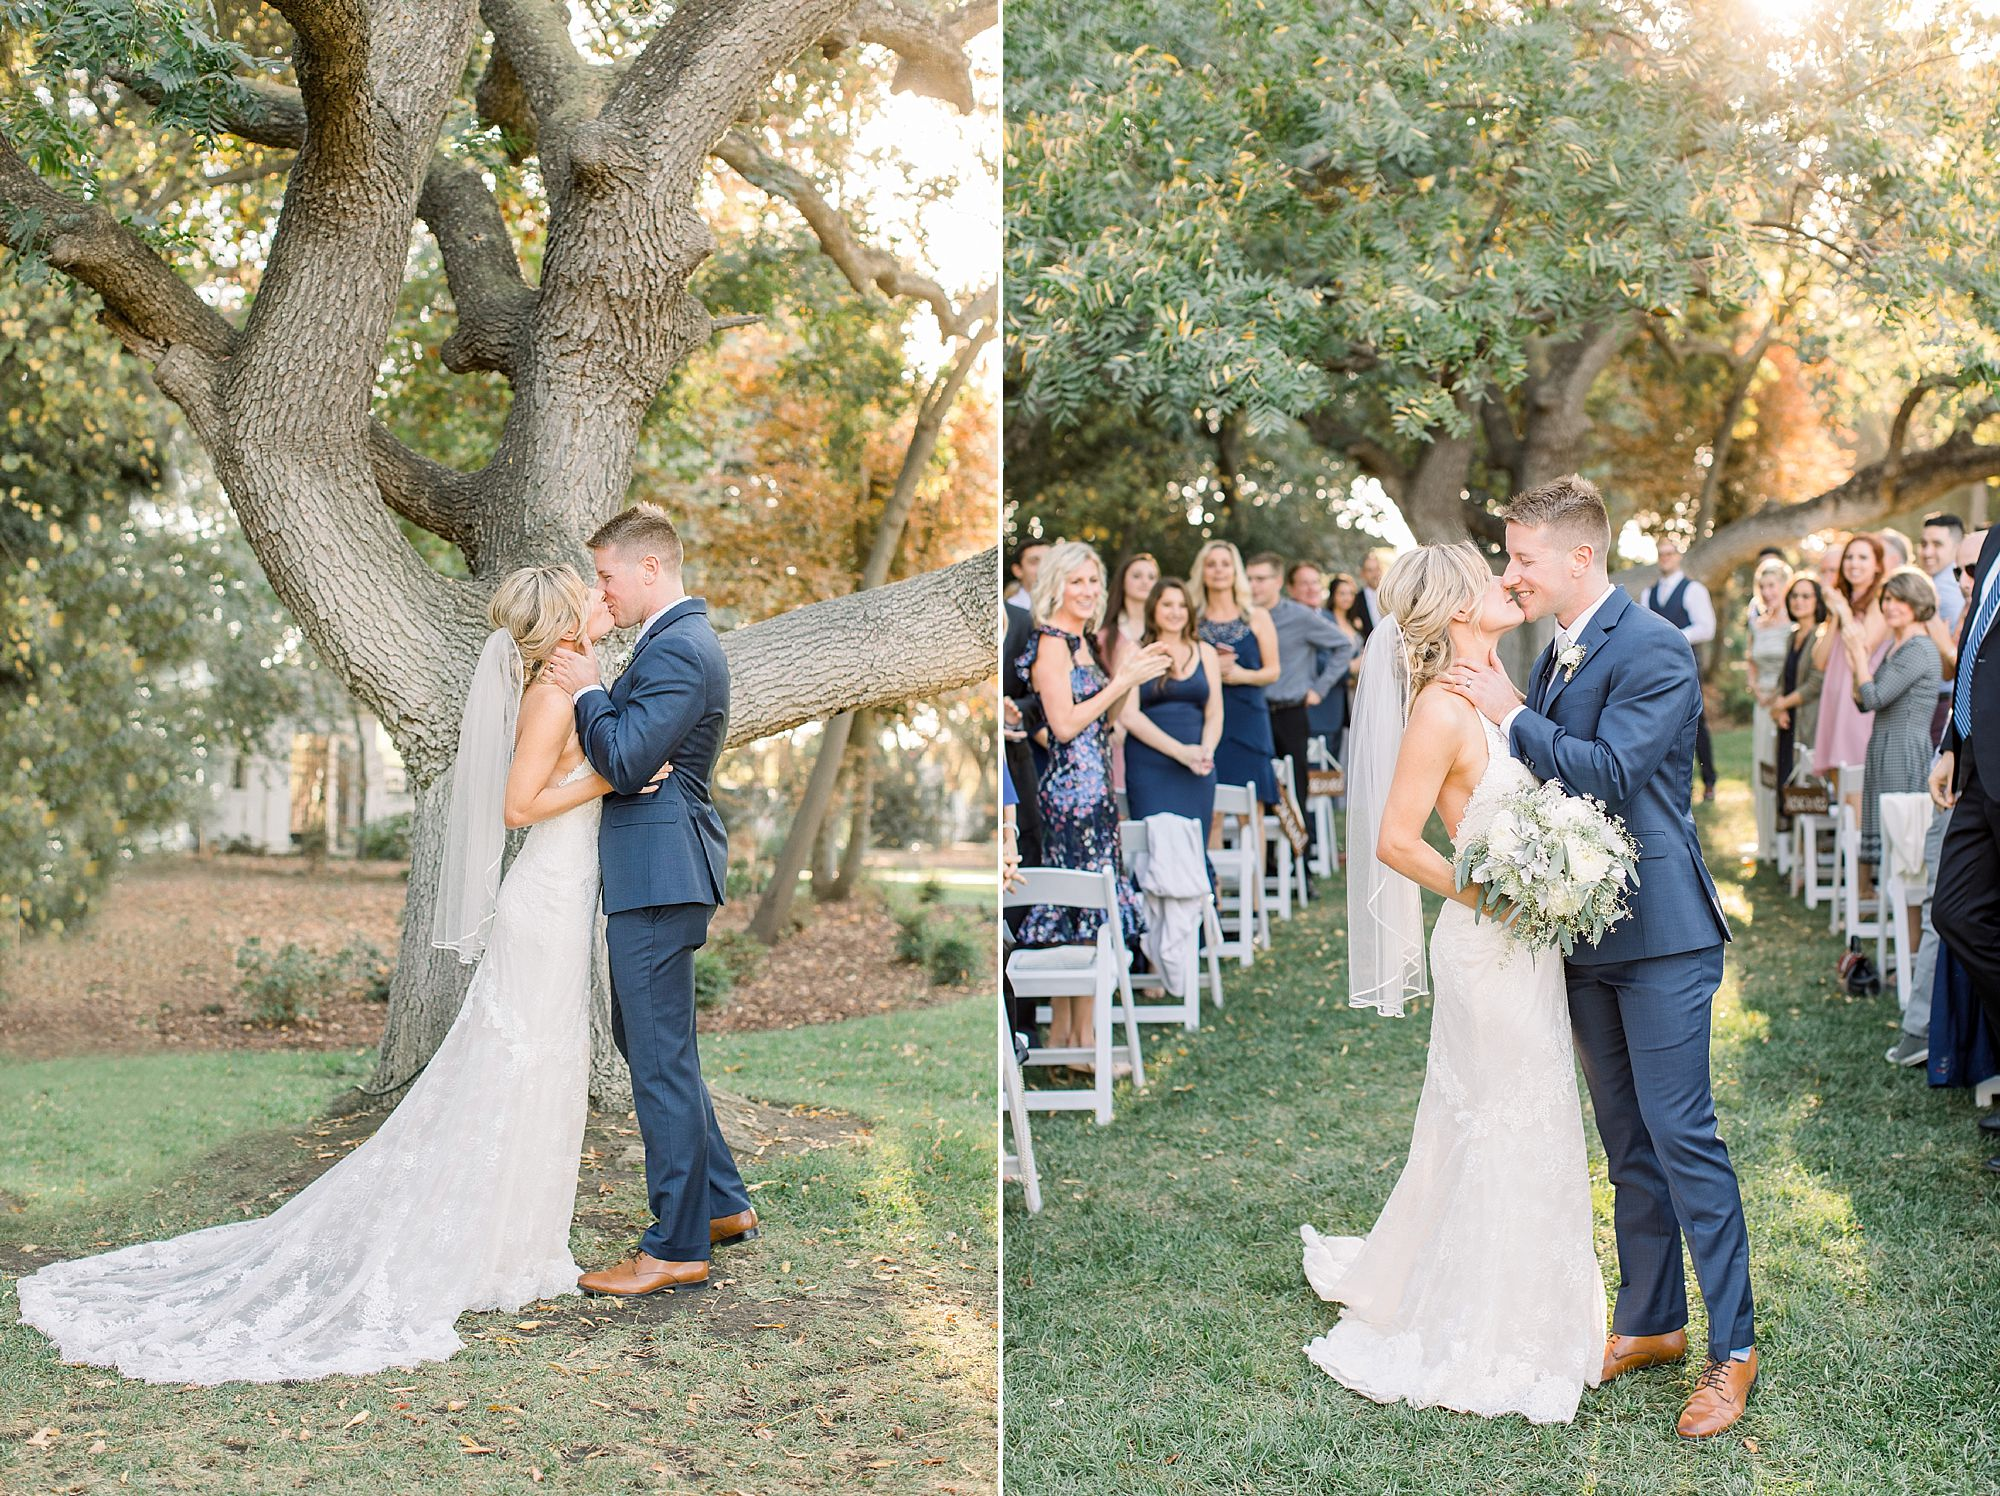 The Maples Wedding in Woodland California - Ashley Baumgartner - Sacramento Wedding Photographer - Sacramento Film Photographer_0043.jpg